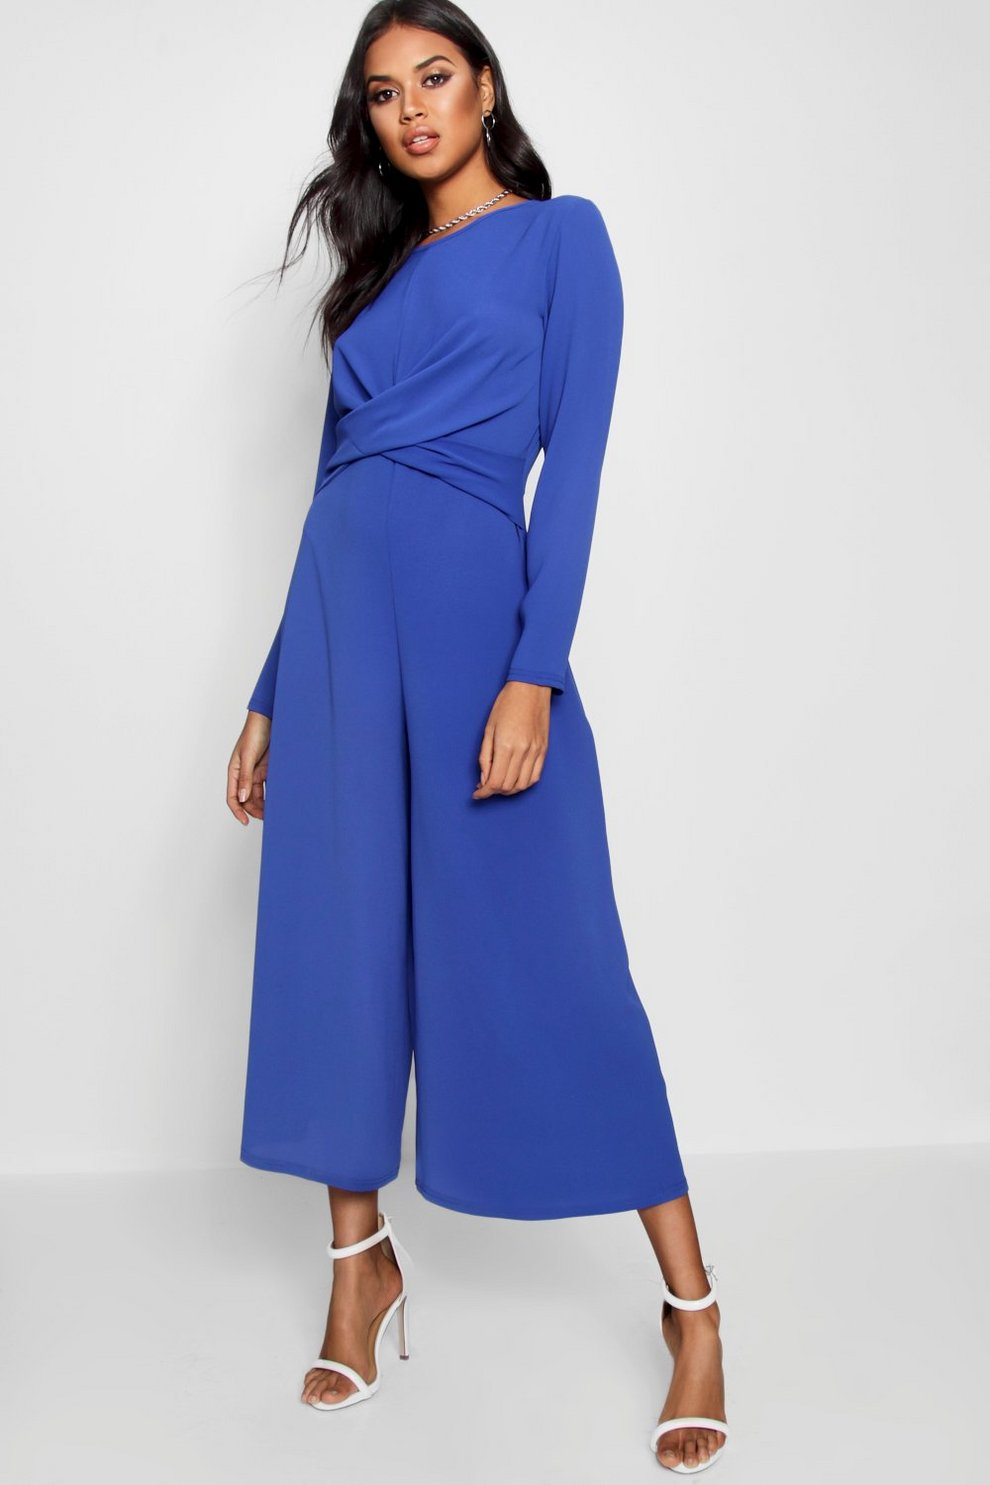 Boohoo Petite Knot Front Culotte Jumpsuit Cheap Explore Cheap Sale Pay With Paypal Cheap Price Wholesale Price Discount Price nt5y243ae4